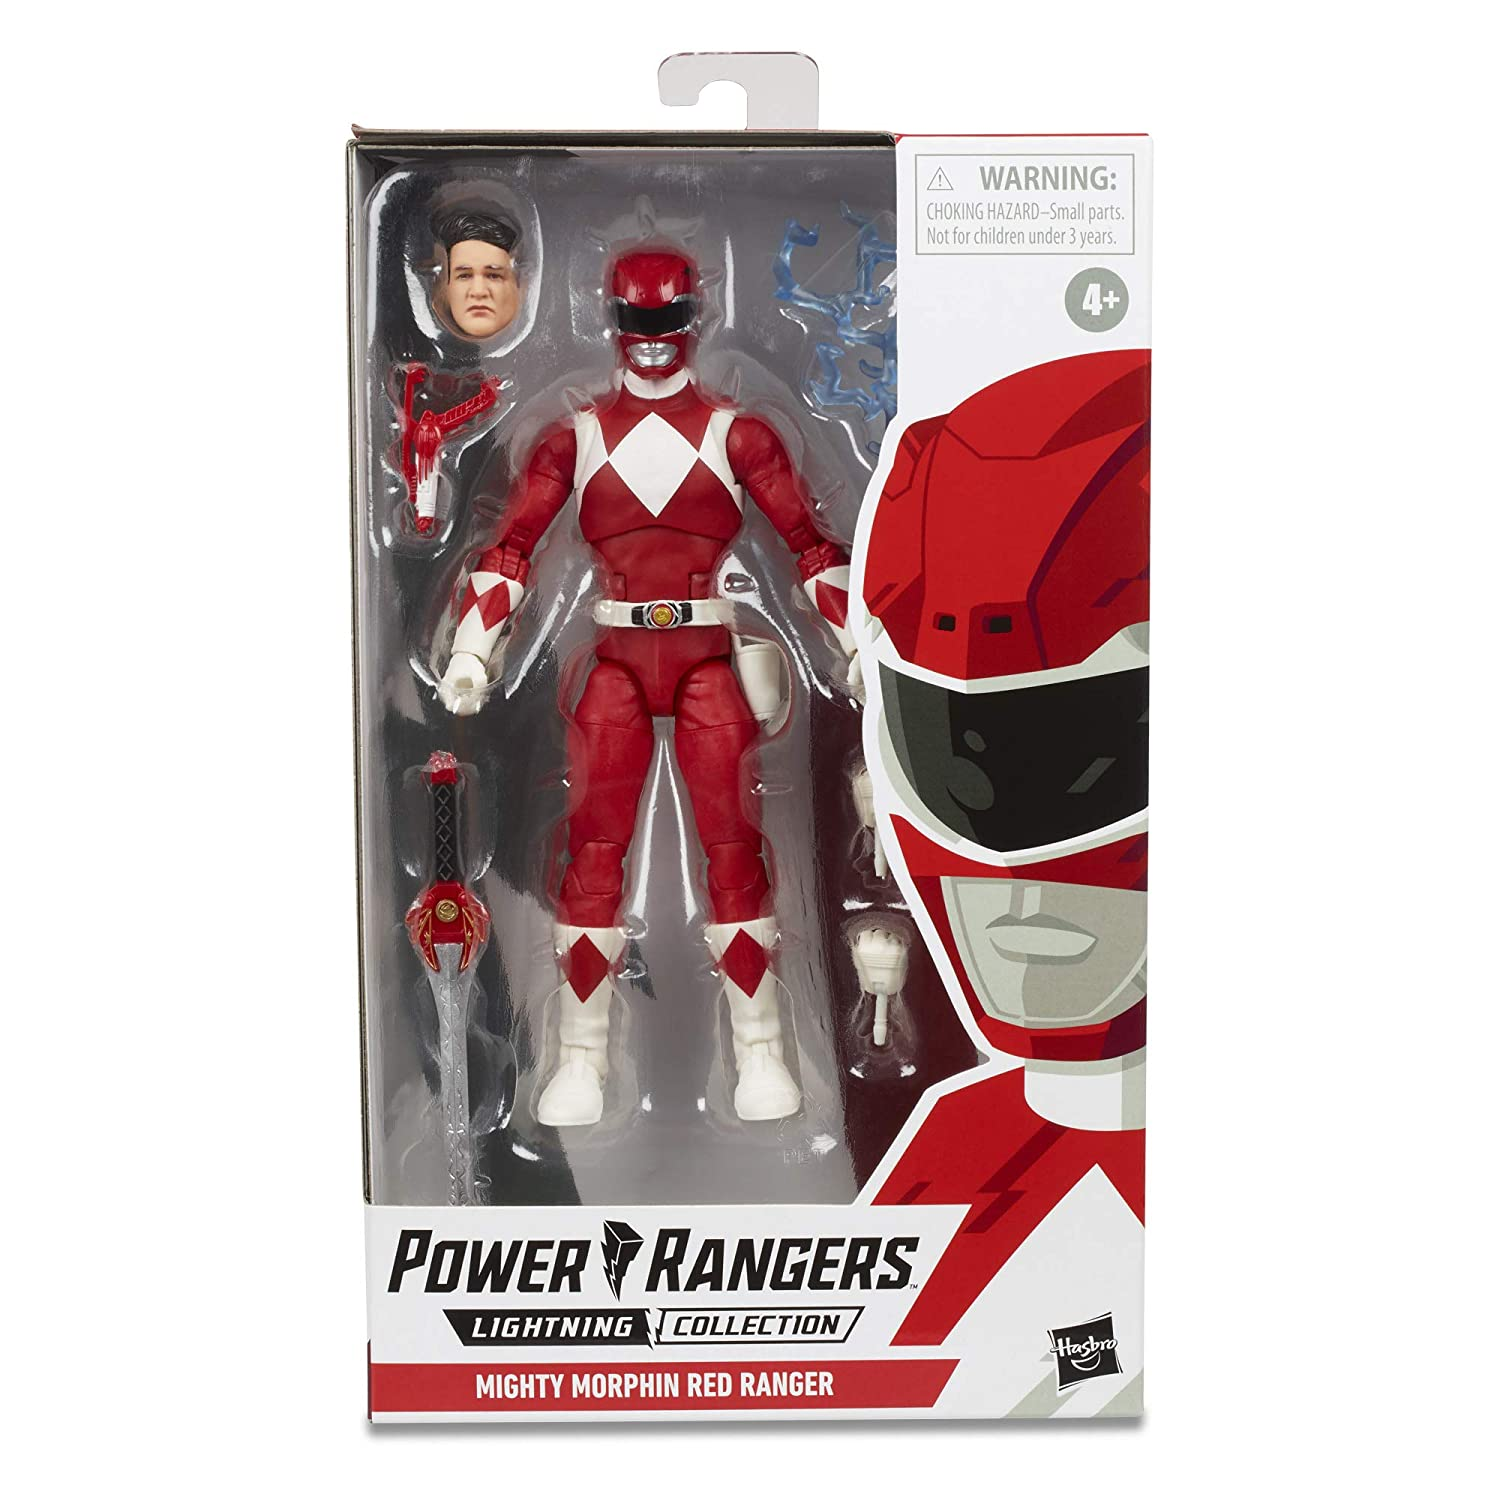 "Power Rangers E7755Lightning Collection 6"" Mighty Morphin Red Ranger Collectible Action Figure Toy with Accessories"